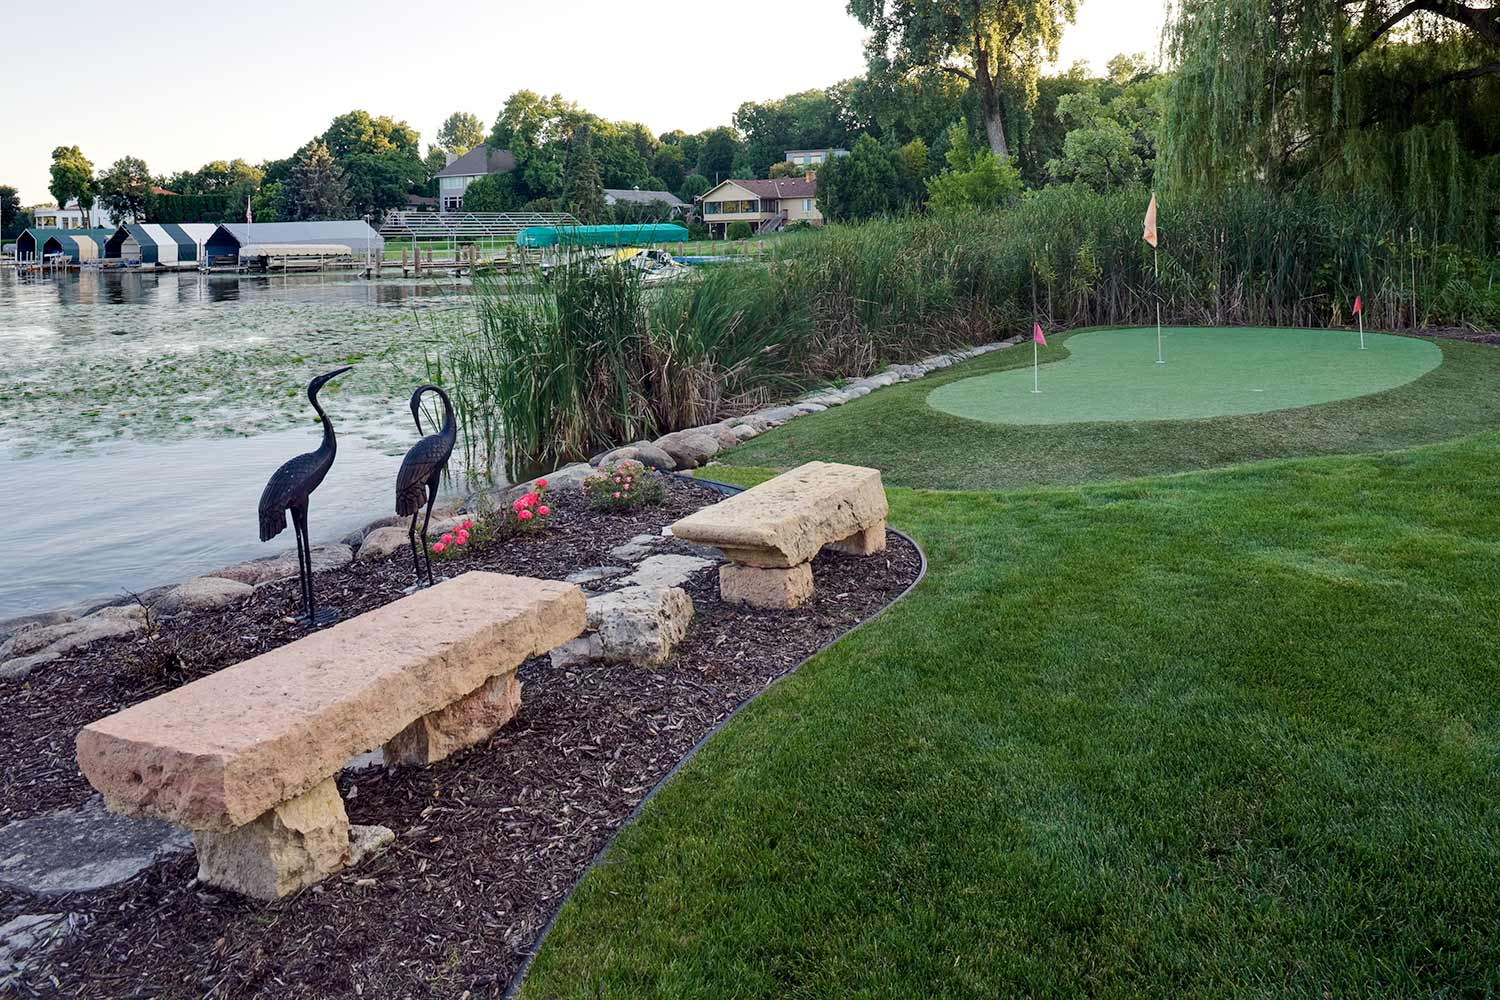 stone benches and putting green overlooking lake minnetonka